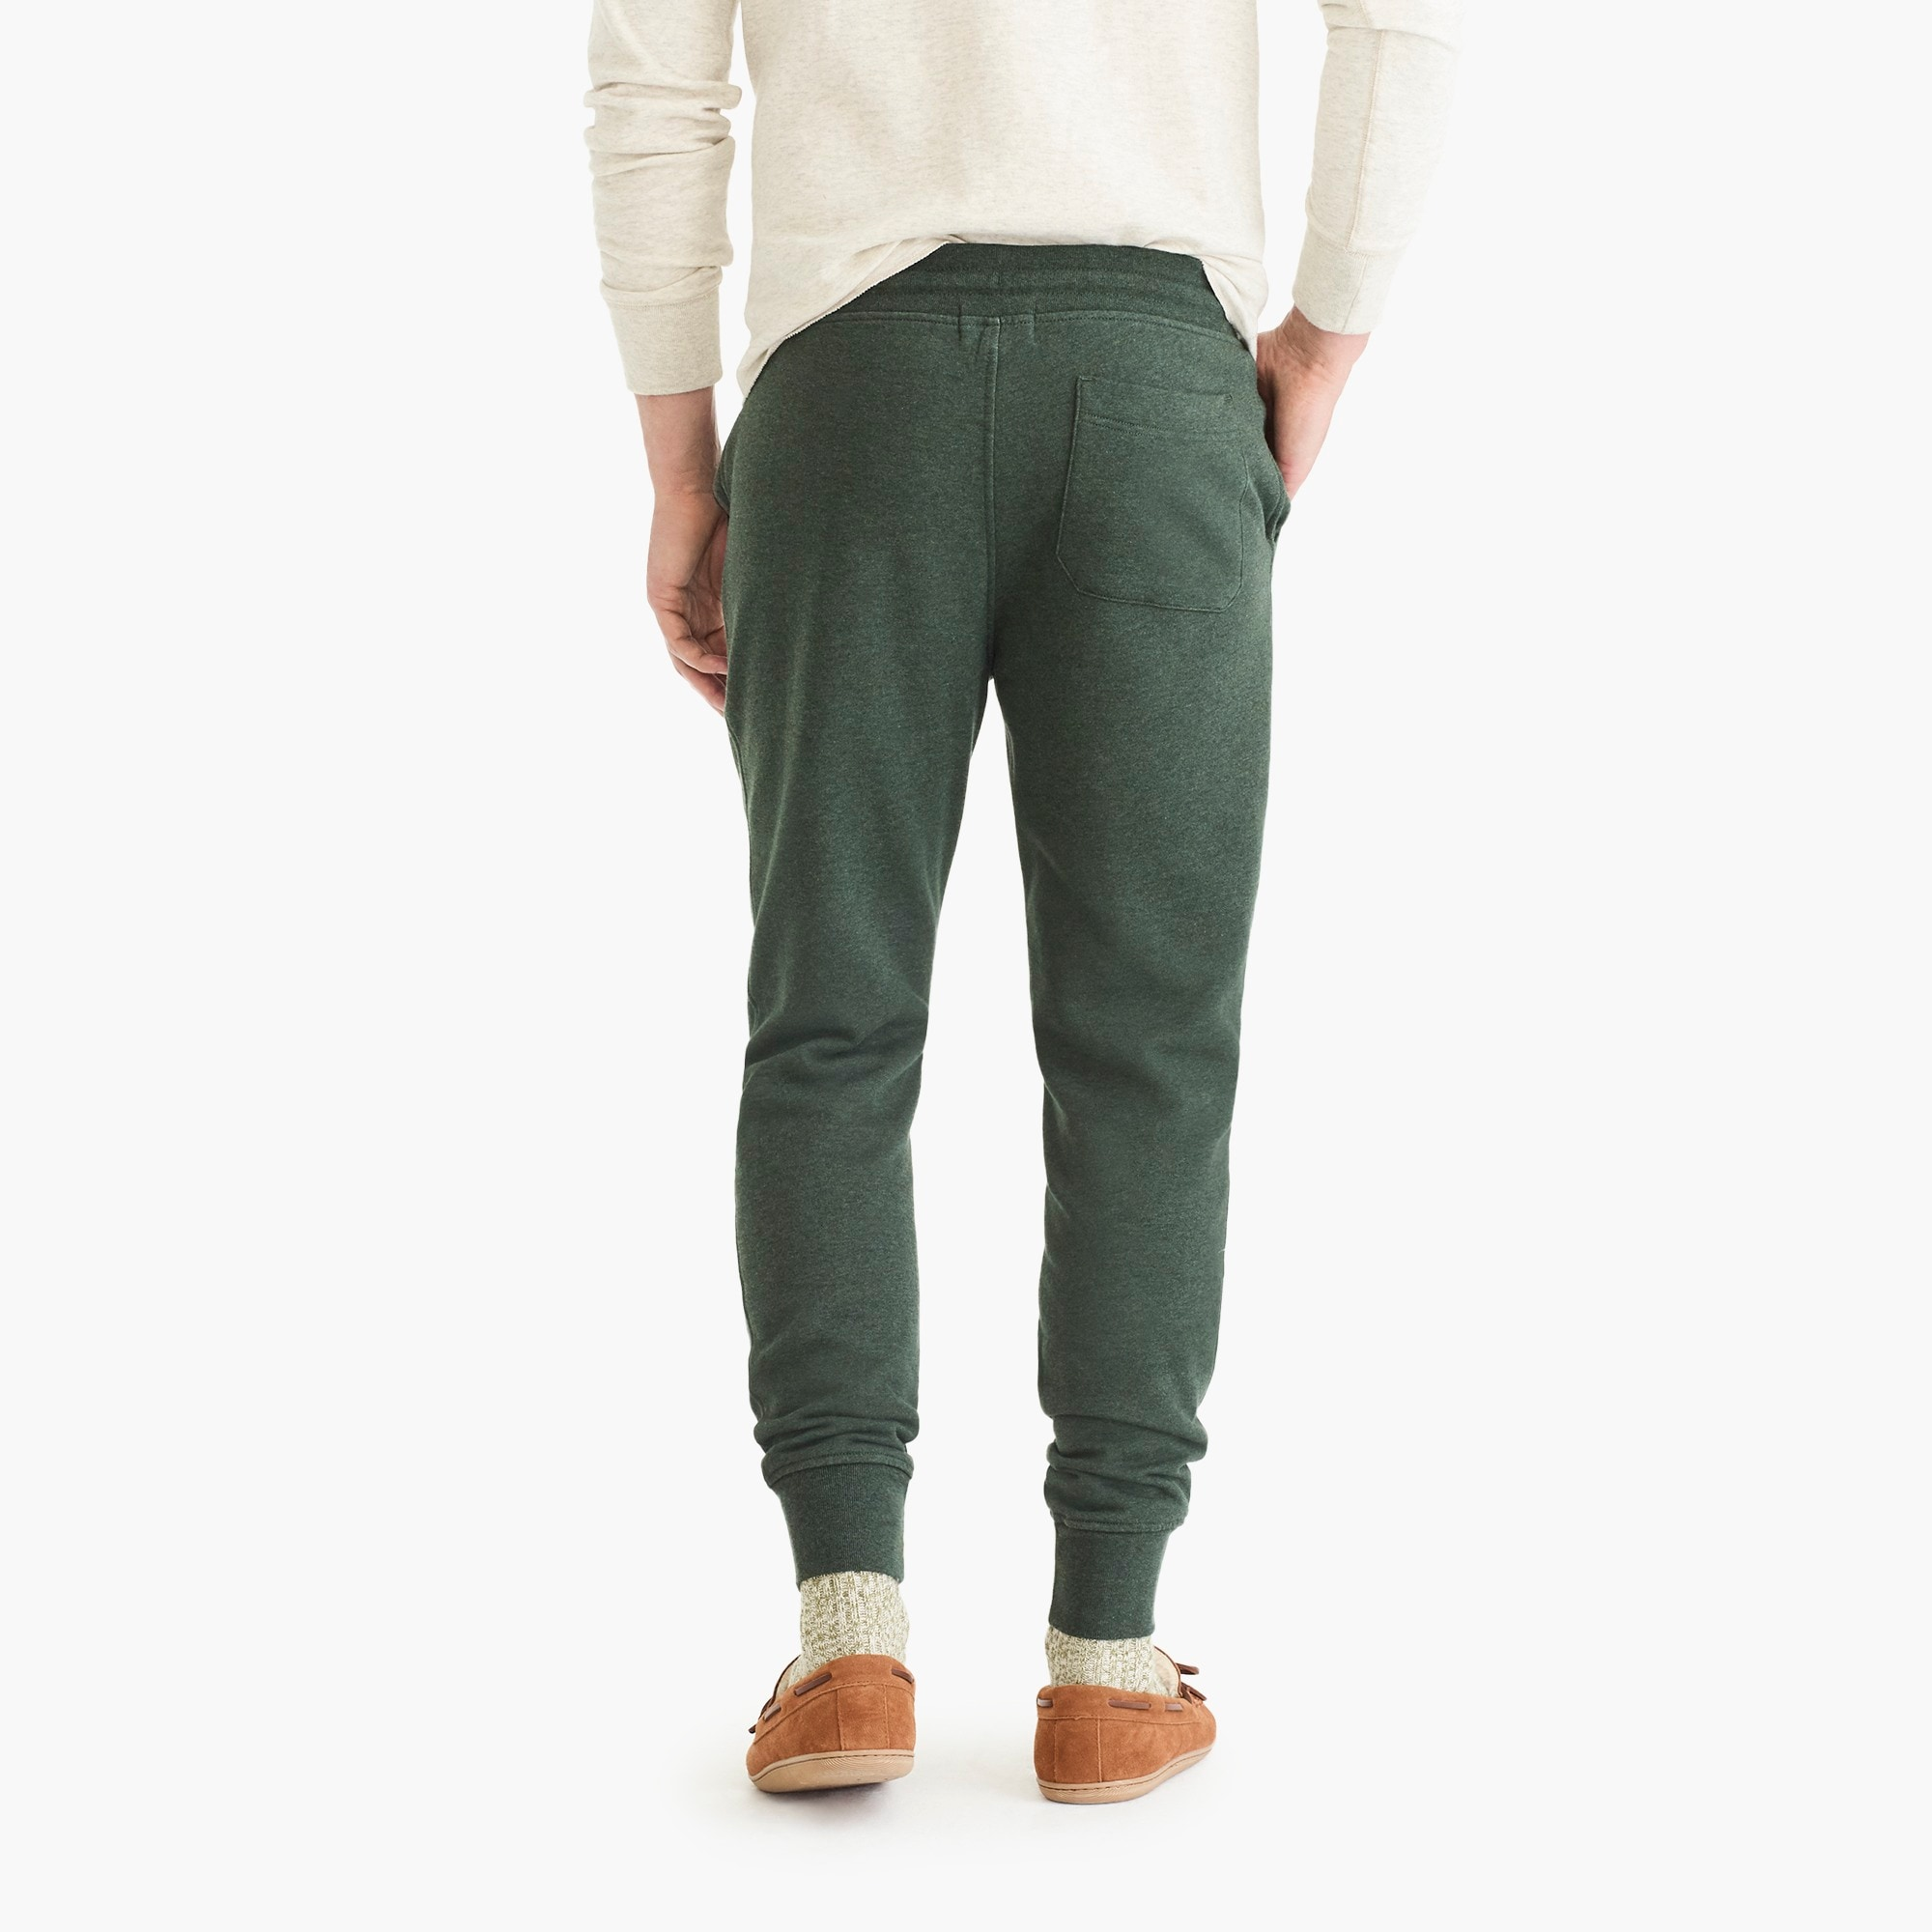 Slim brushed fleece sweatpant